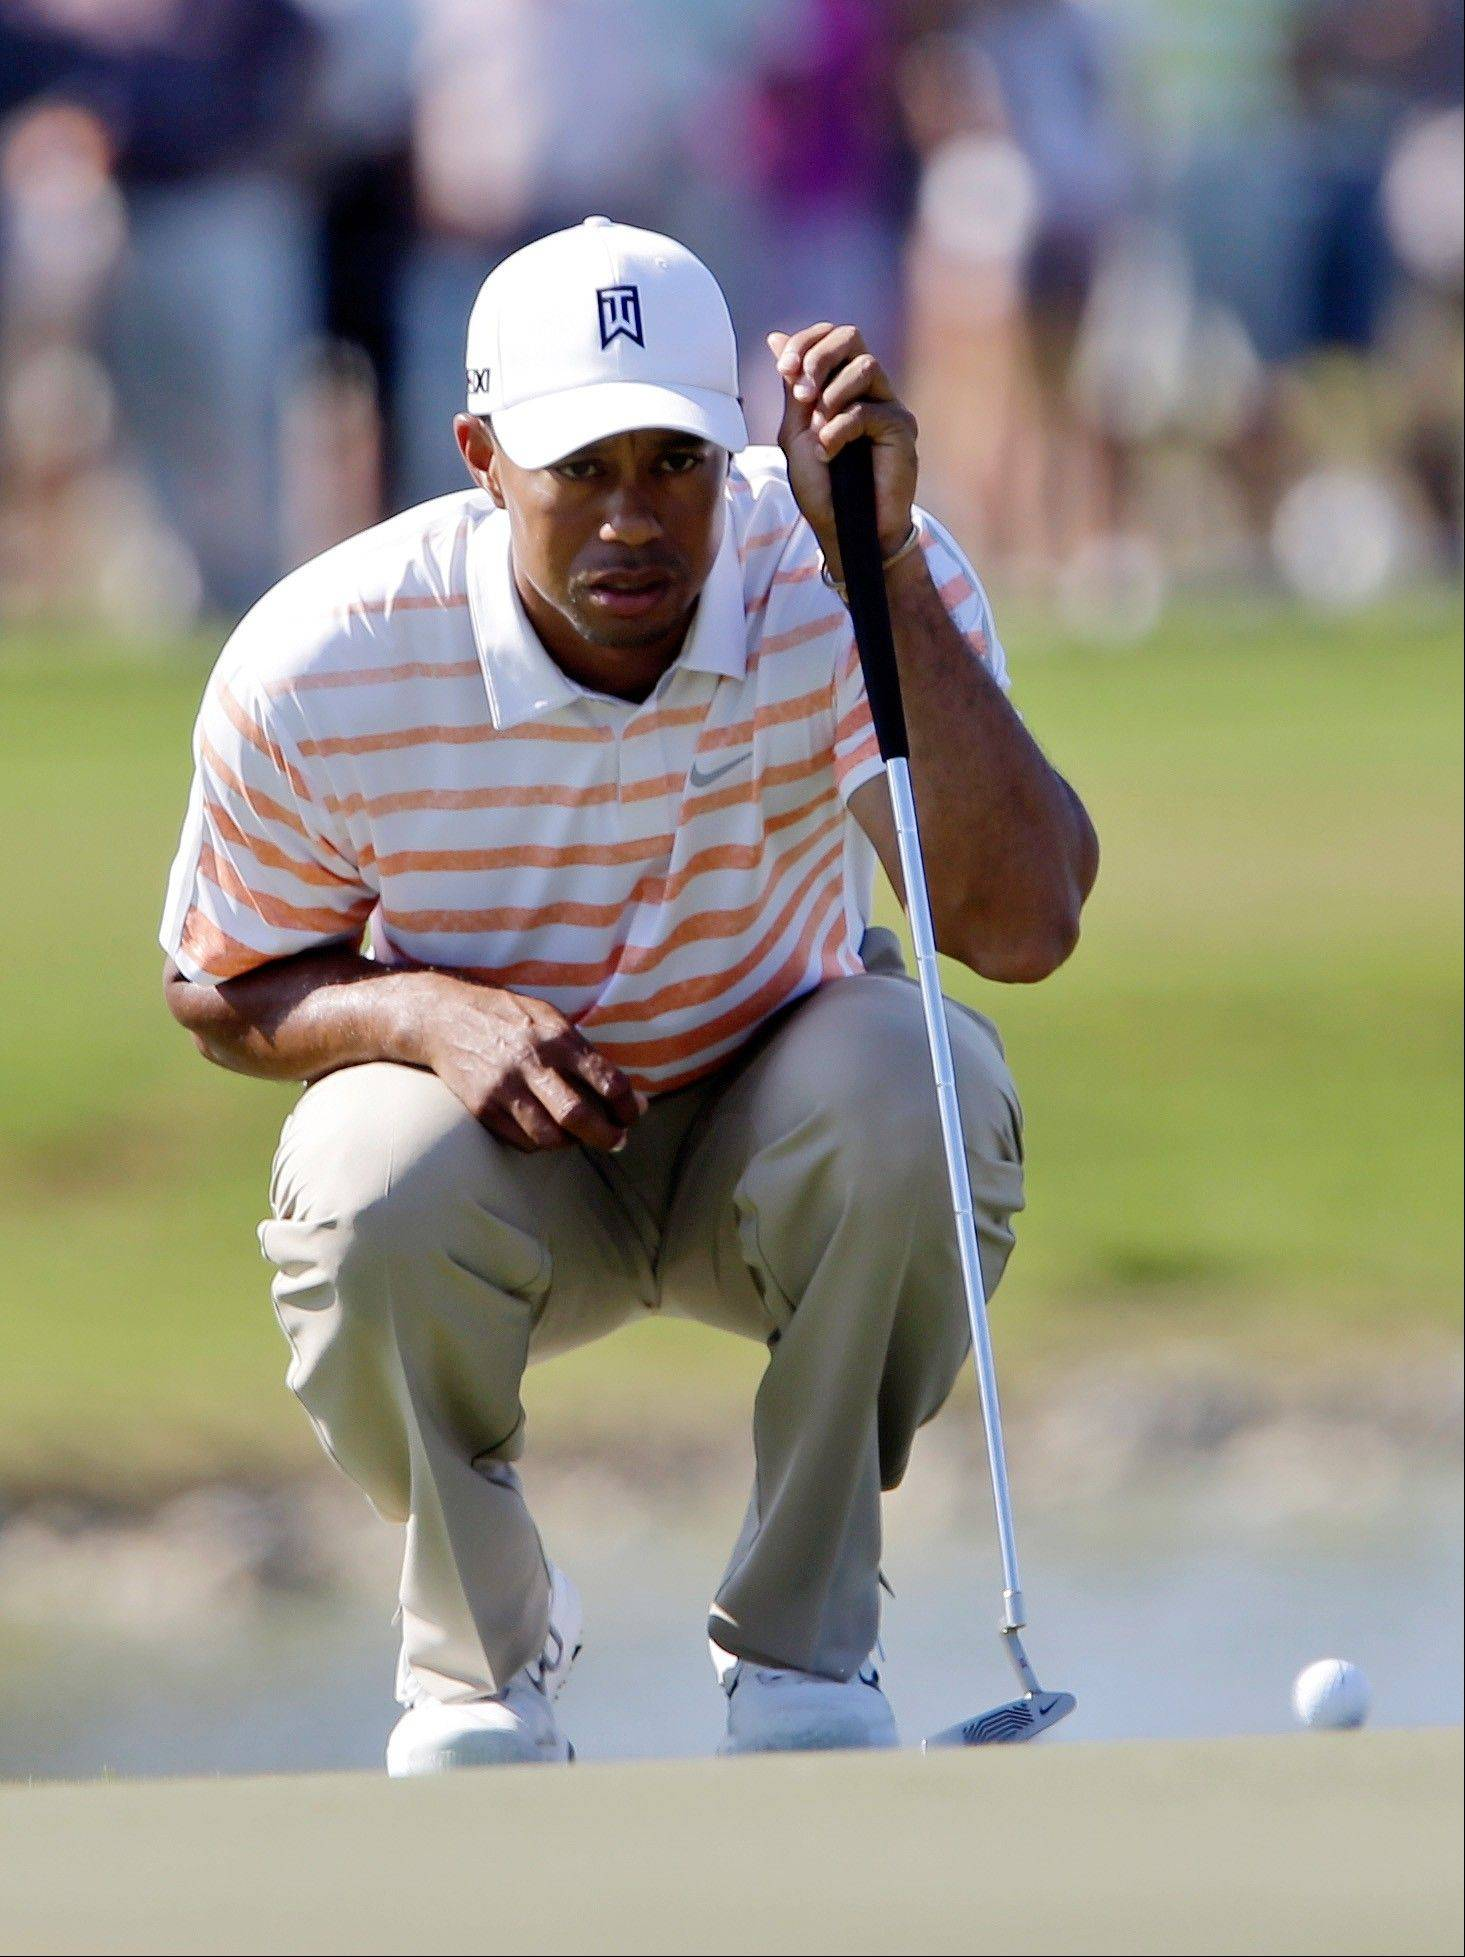 Tiger Woods looks over his putt on the ninth green during the second round of the Cadillac Championship golf tournament Friday, March 8, 2013, in Doral, Fla.